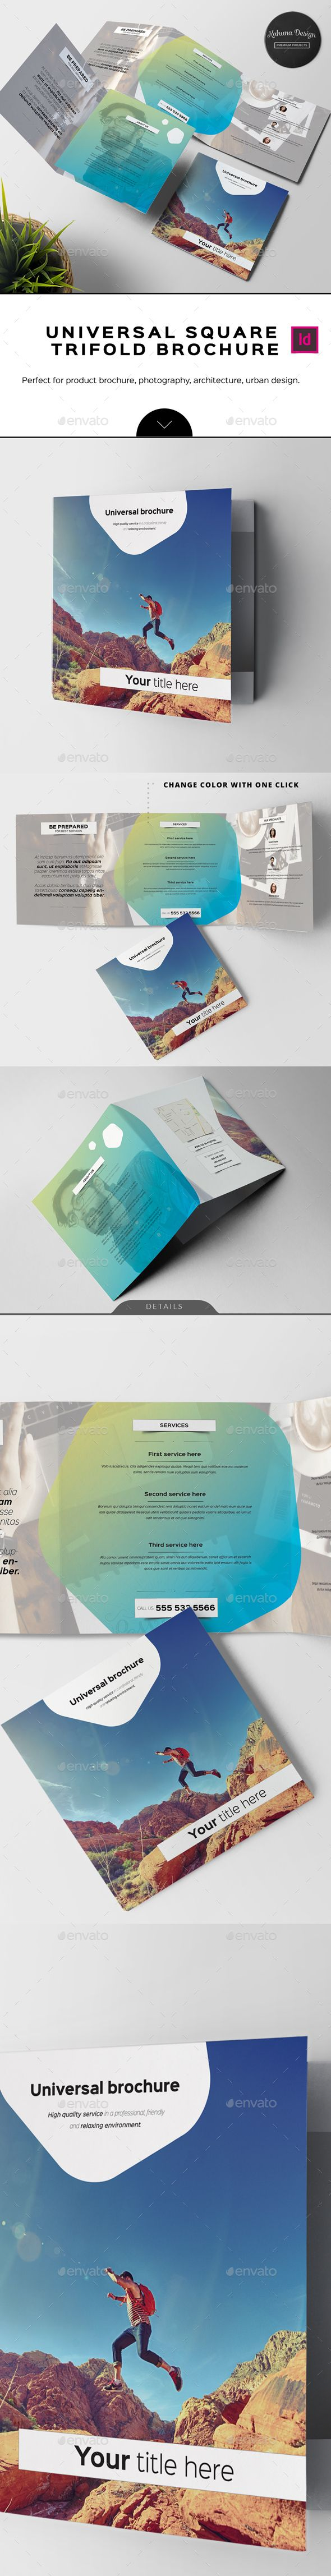 Universal Square Trifold Brochure   Brochures, Brochure template and ...